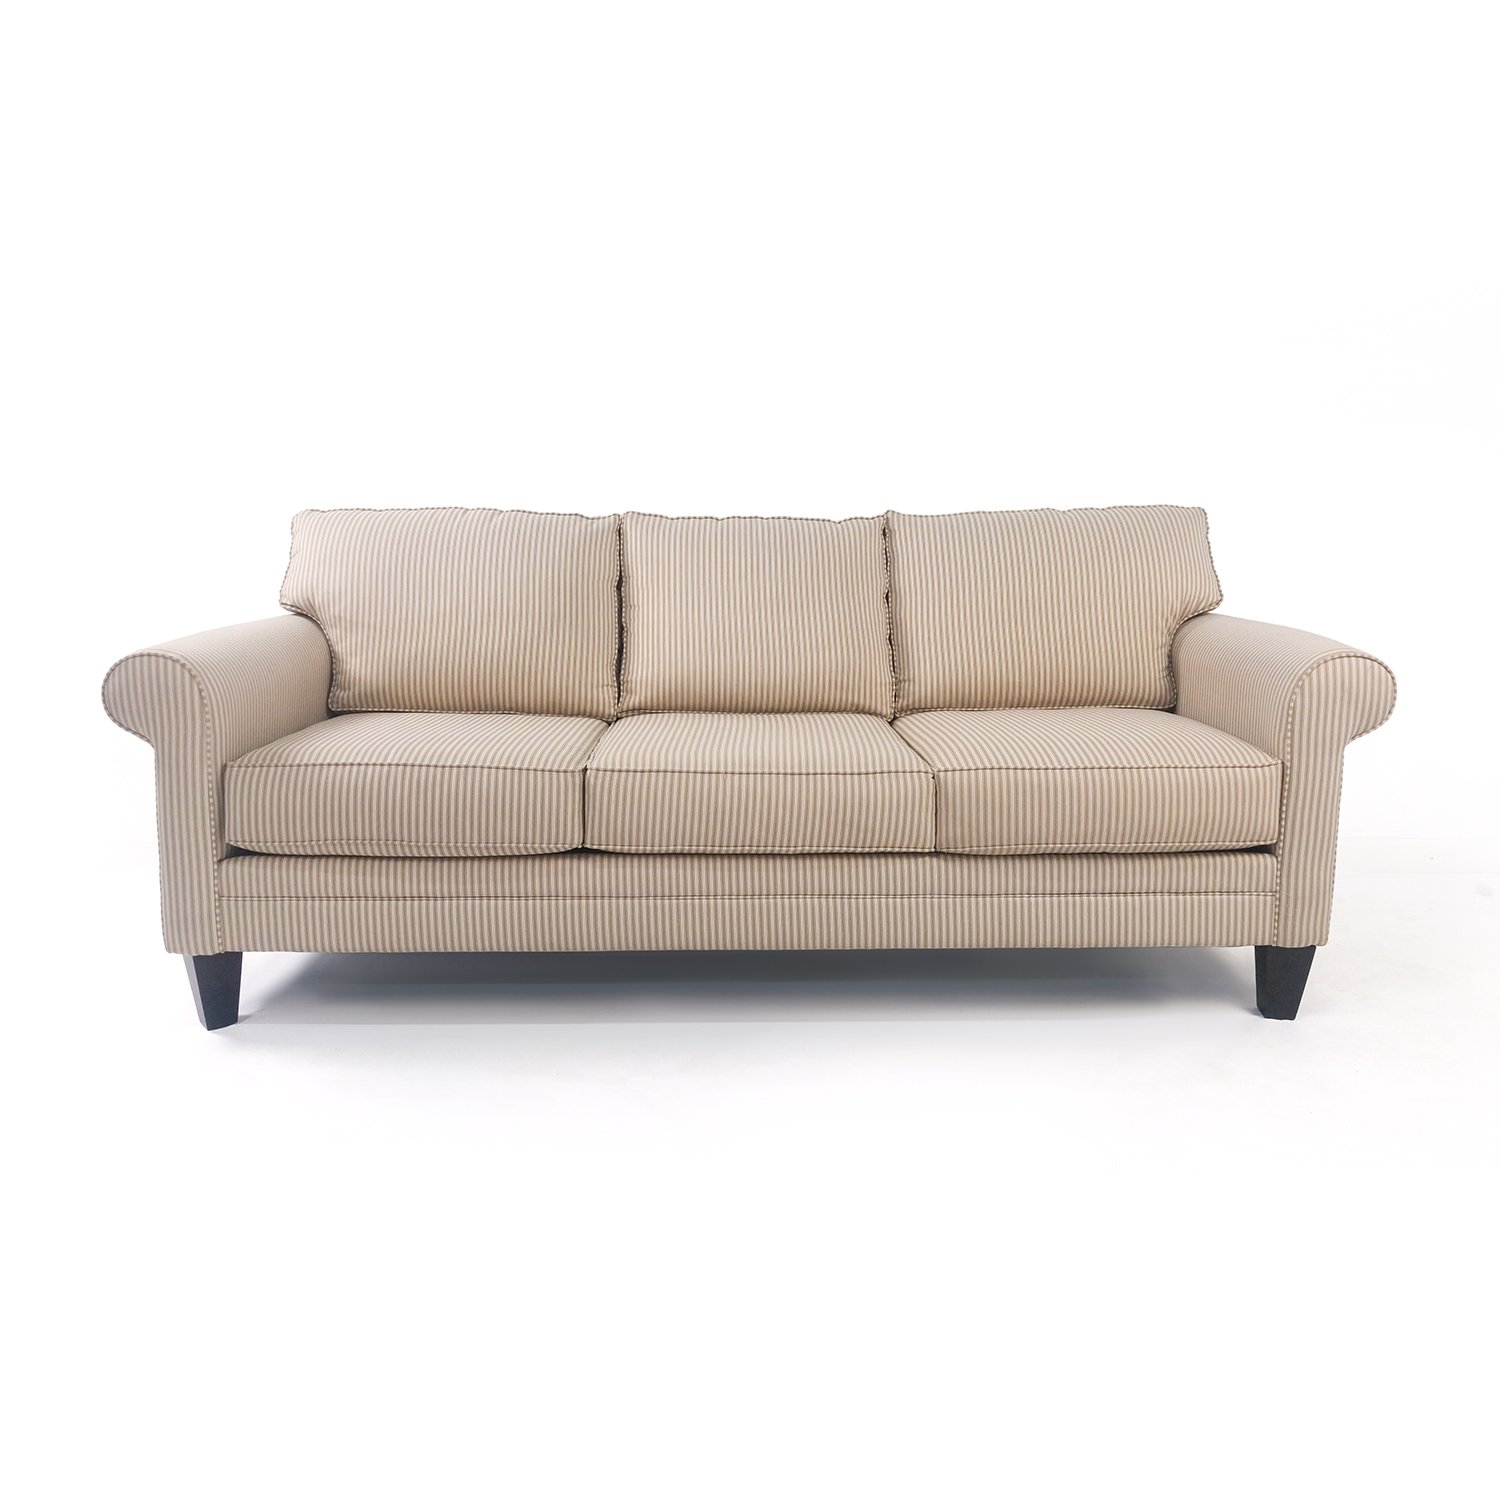 Raymour and flanigan sofas raymour and flanigan sofas for Couch und sofa